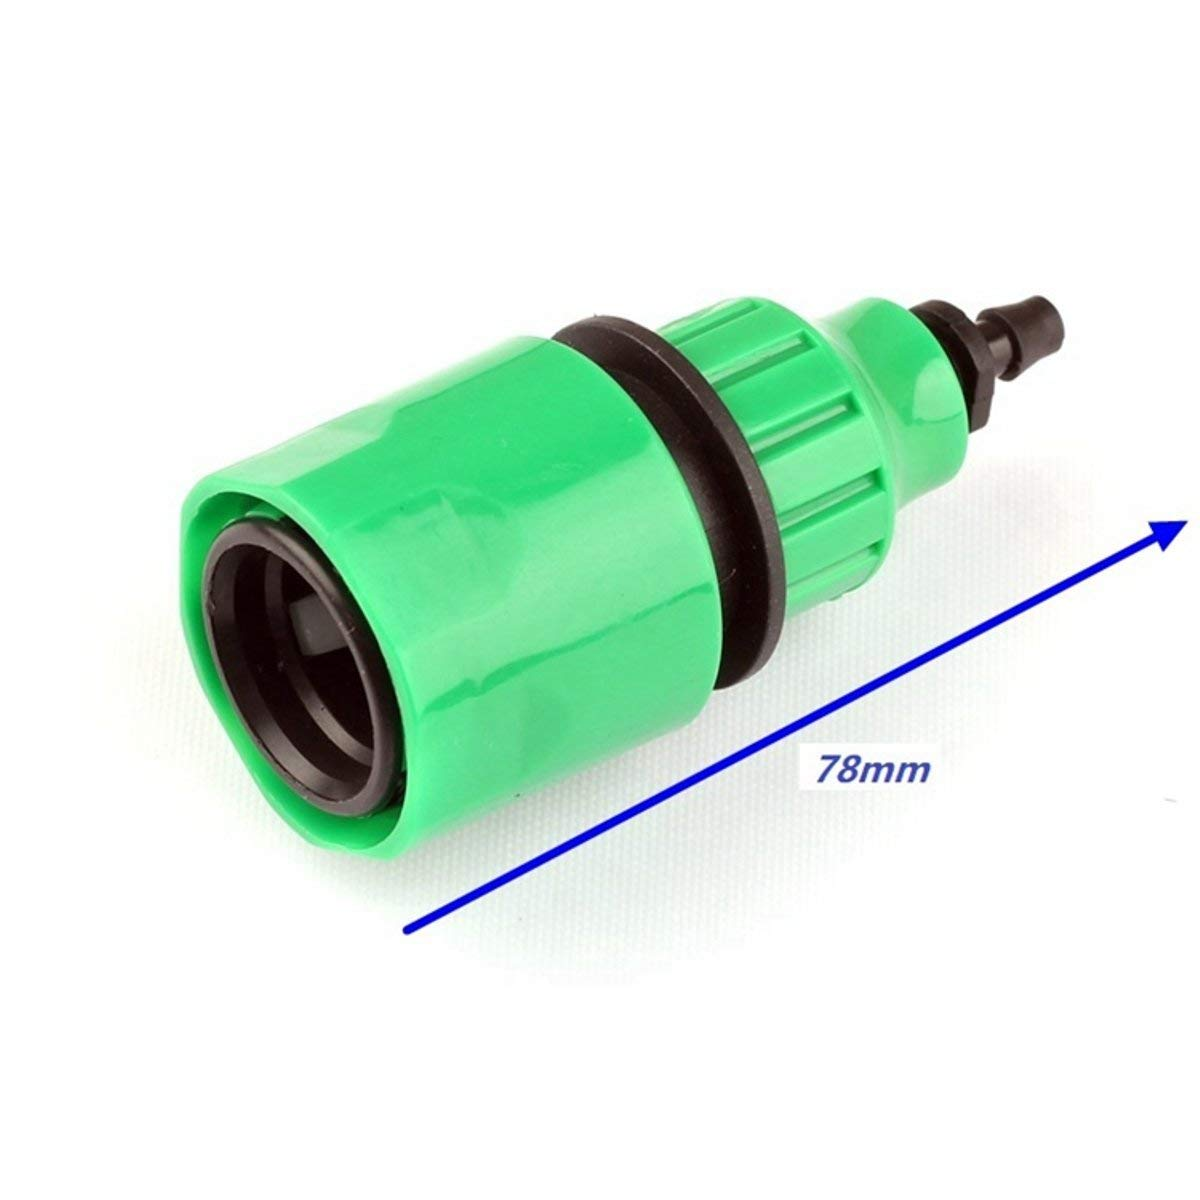 Tacoli- Garden Tap Quick Connector-3pcs 8/11mm Or 4/7mm Hose Barbed Quick Connectors Tap Adaptor Coupling Telescopic Joint Garden Drip Irrigation System Fittings